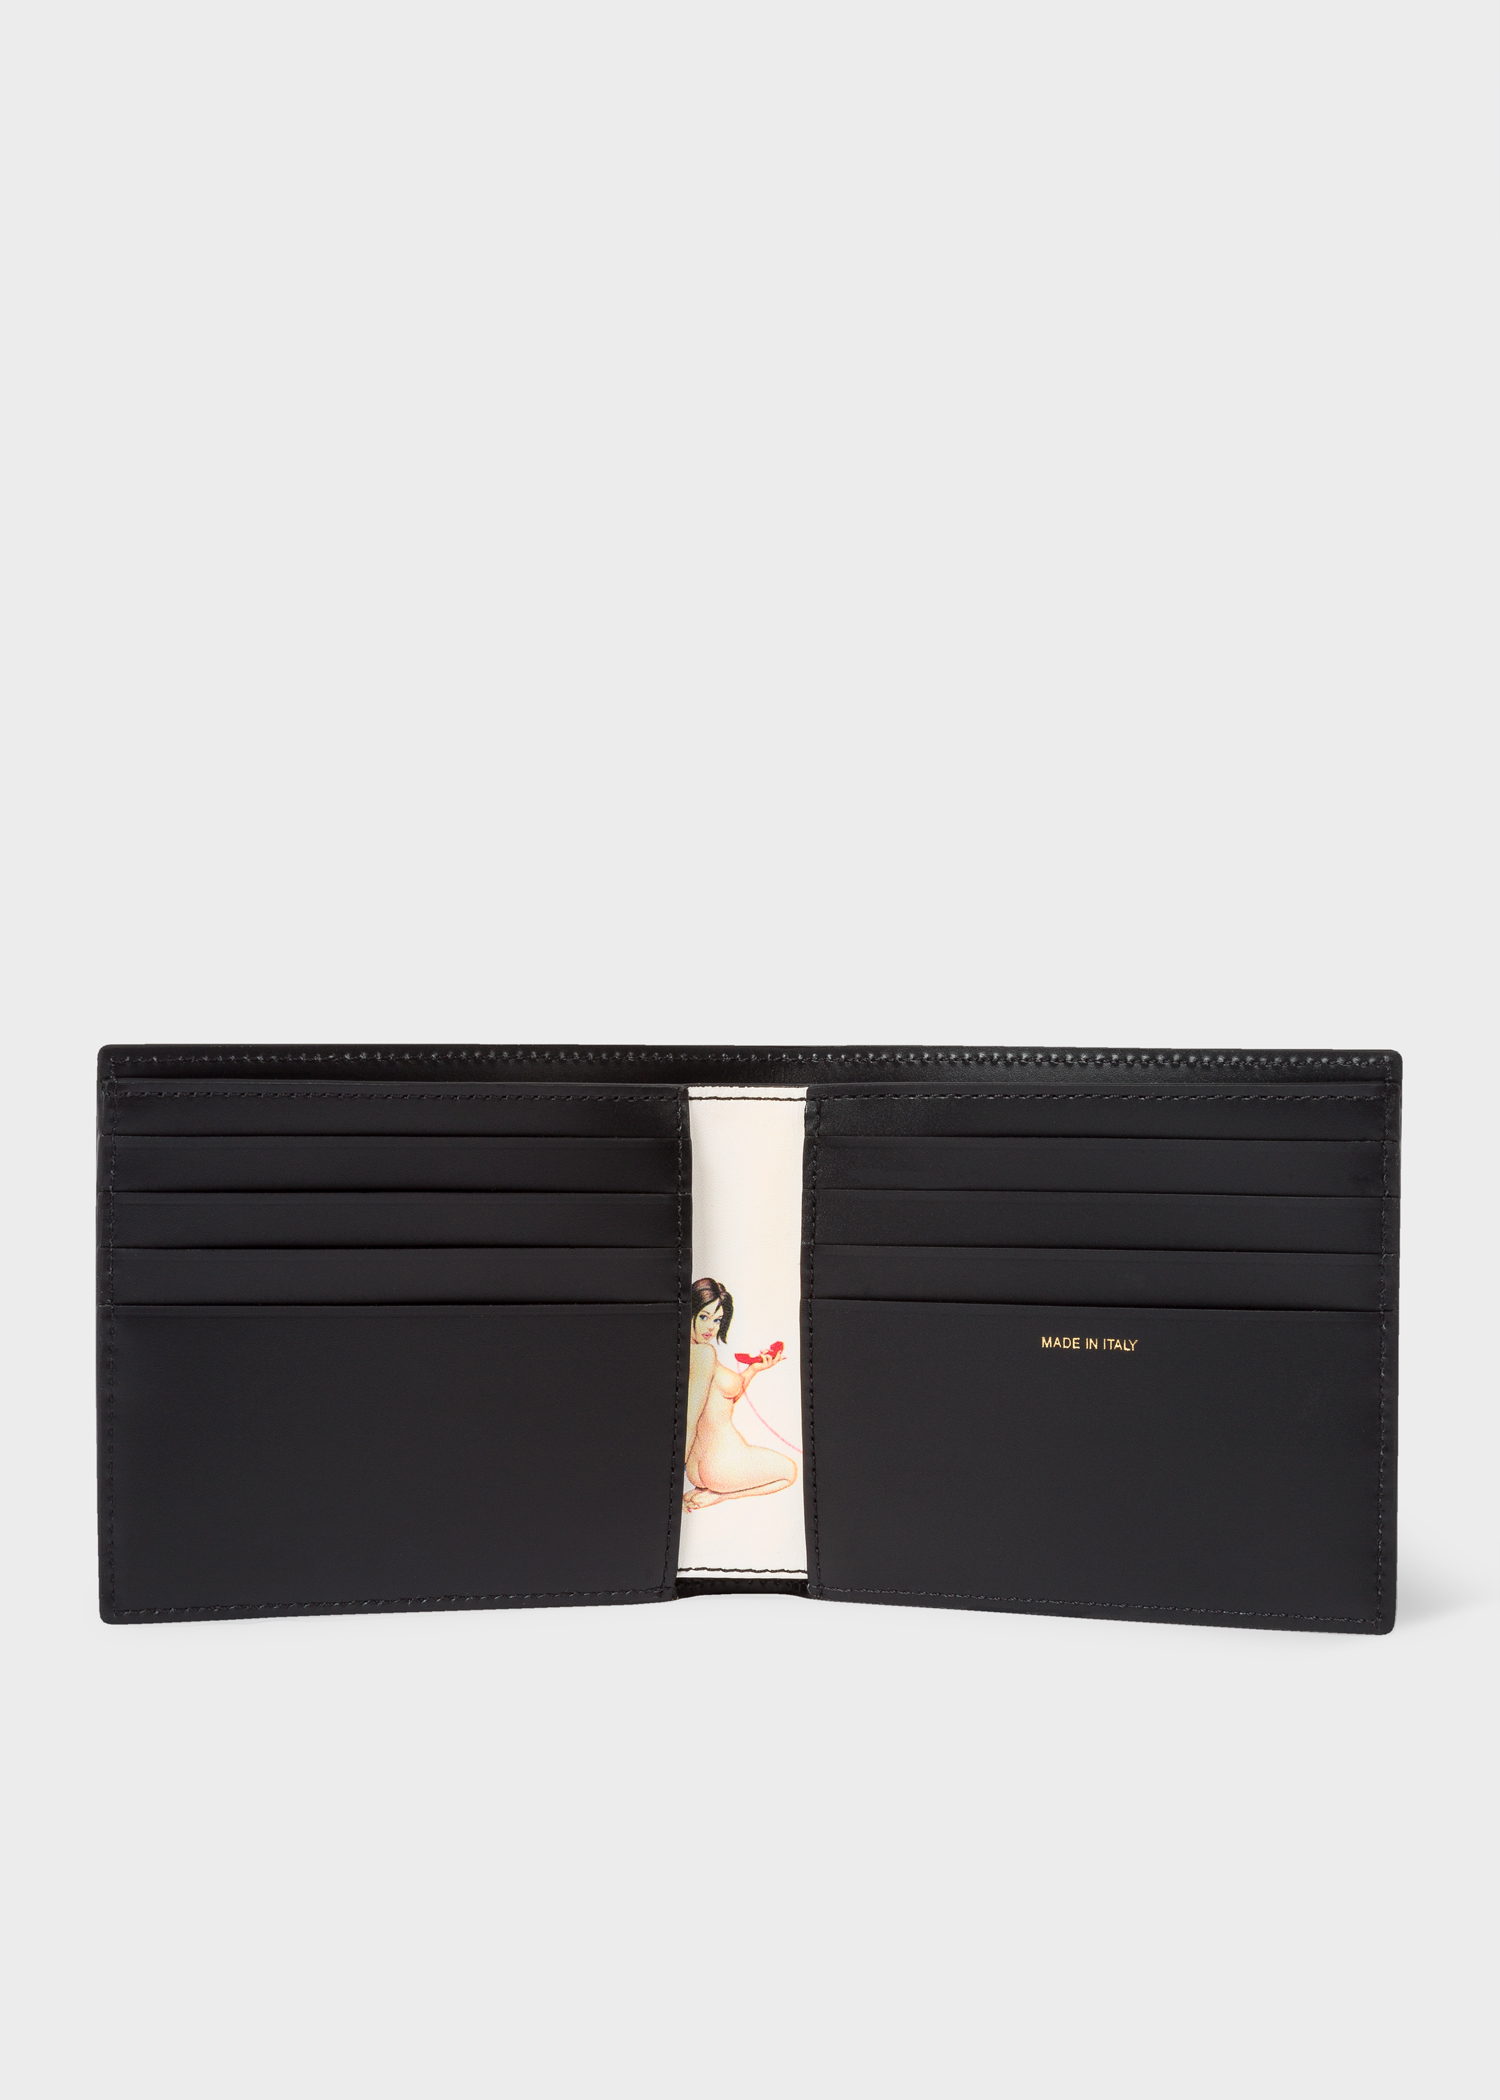 bf86b665e8ff Men's Black Leather 'Naked Lady' Print Interior Billfold Wallet by Paul  Smith